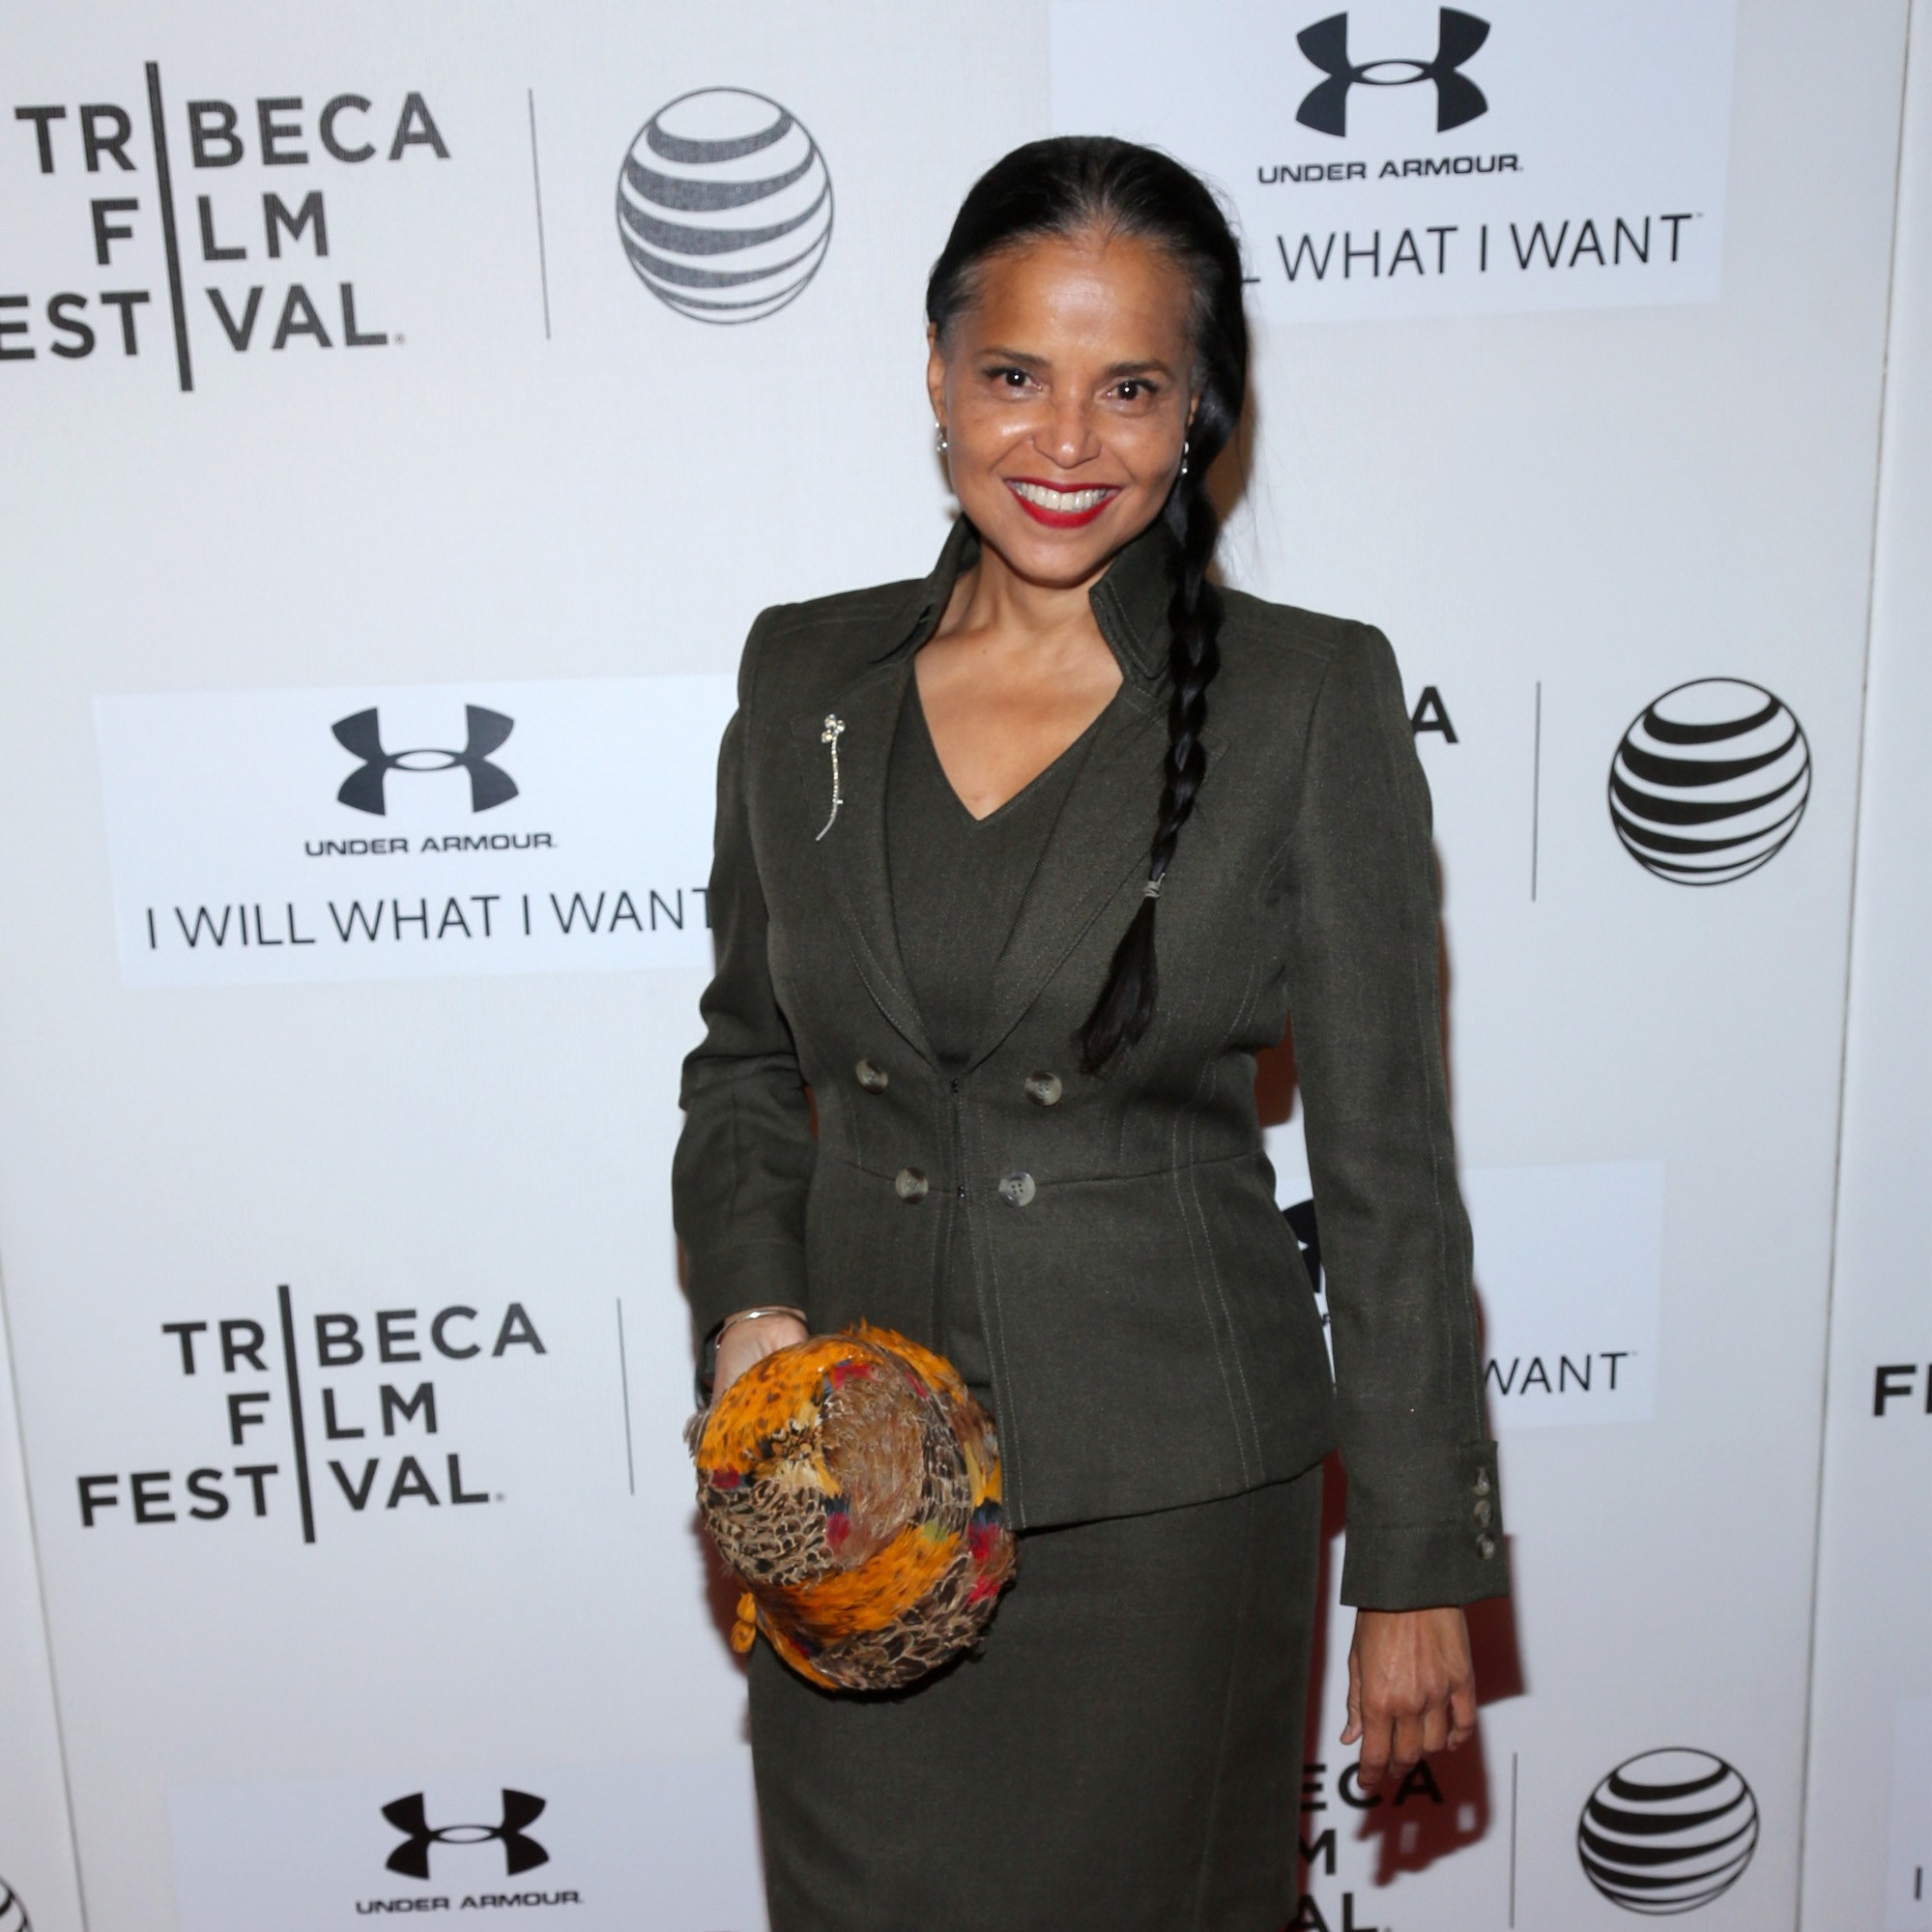 """NEW YORK, NY - APRIL 19:  Actress Victoria Rowell attends the premiere of """"A Ballerina's Tale"""" during the 2015 Tribeca Film Festival at BMCC Tribeca PAC on April 19, 2015 in New York City.  (Photo by Rob Kim/Getty Images for the 2015 Tribeca Film Festival)"""